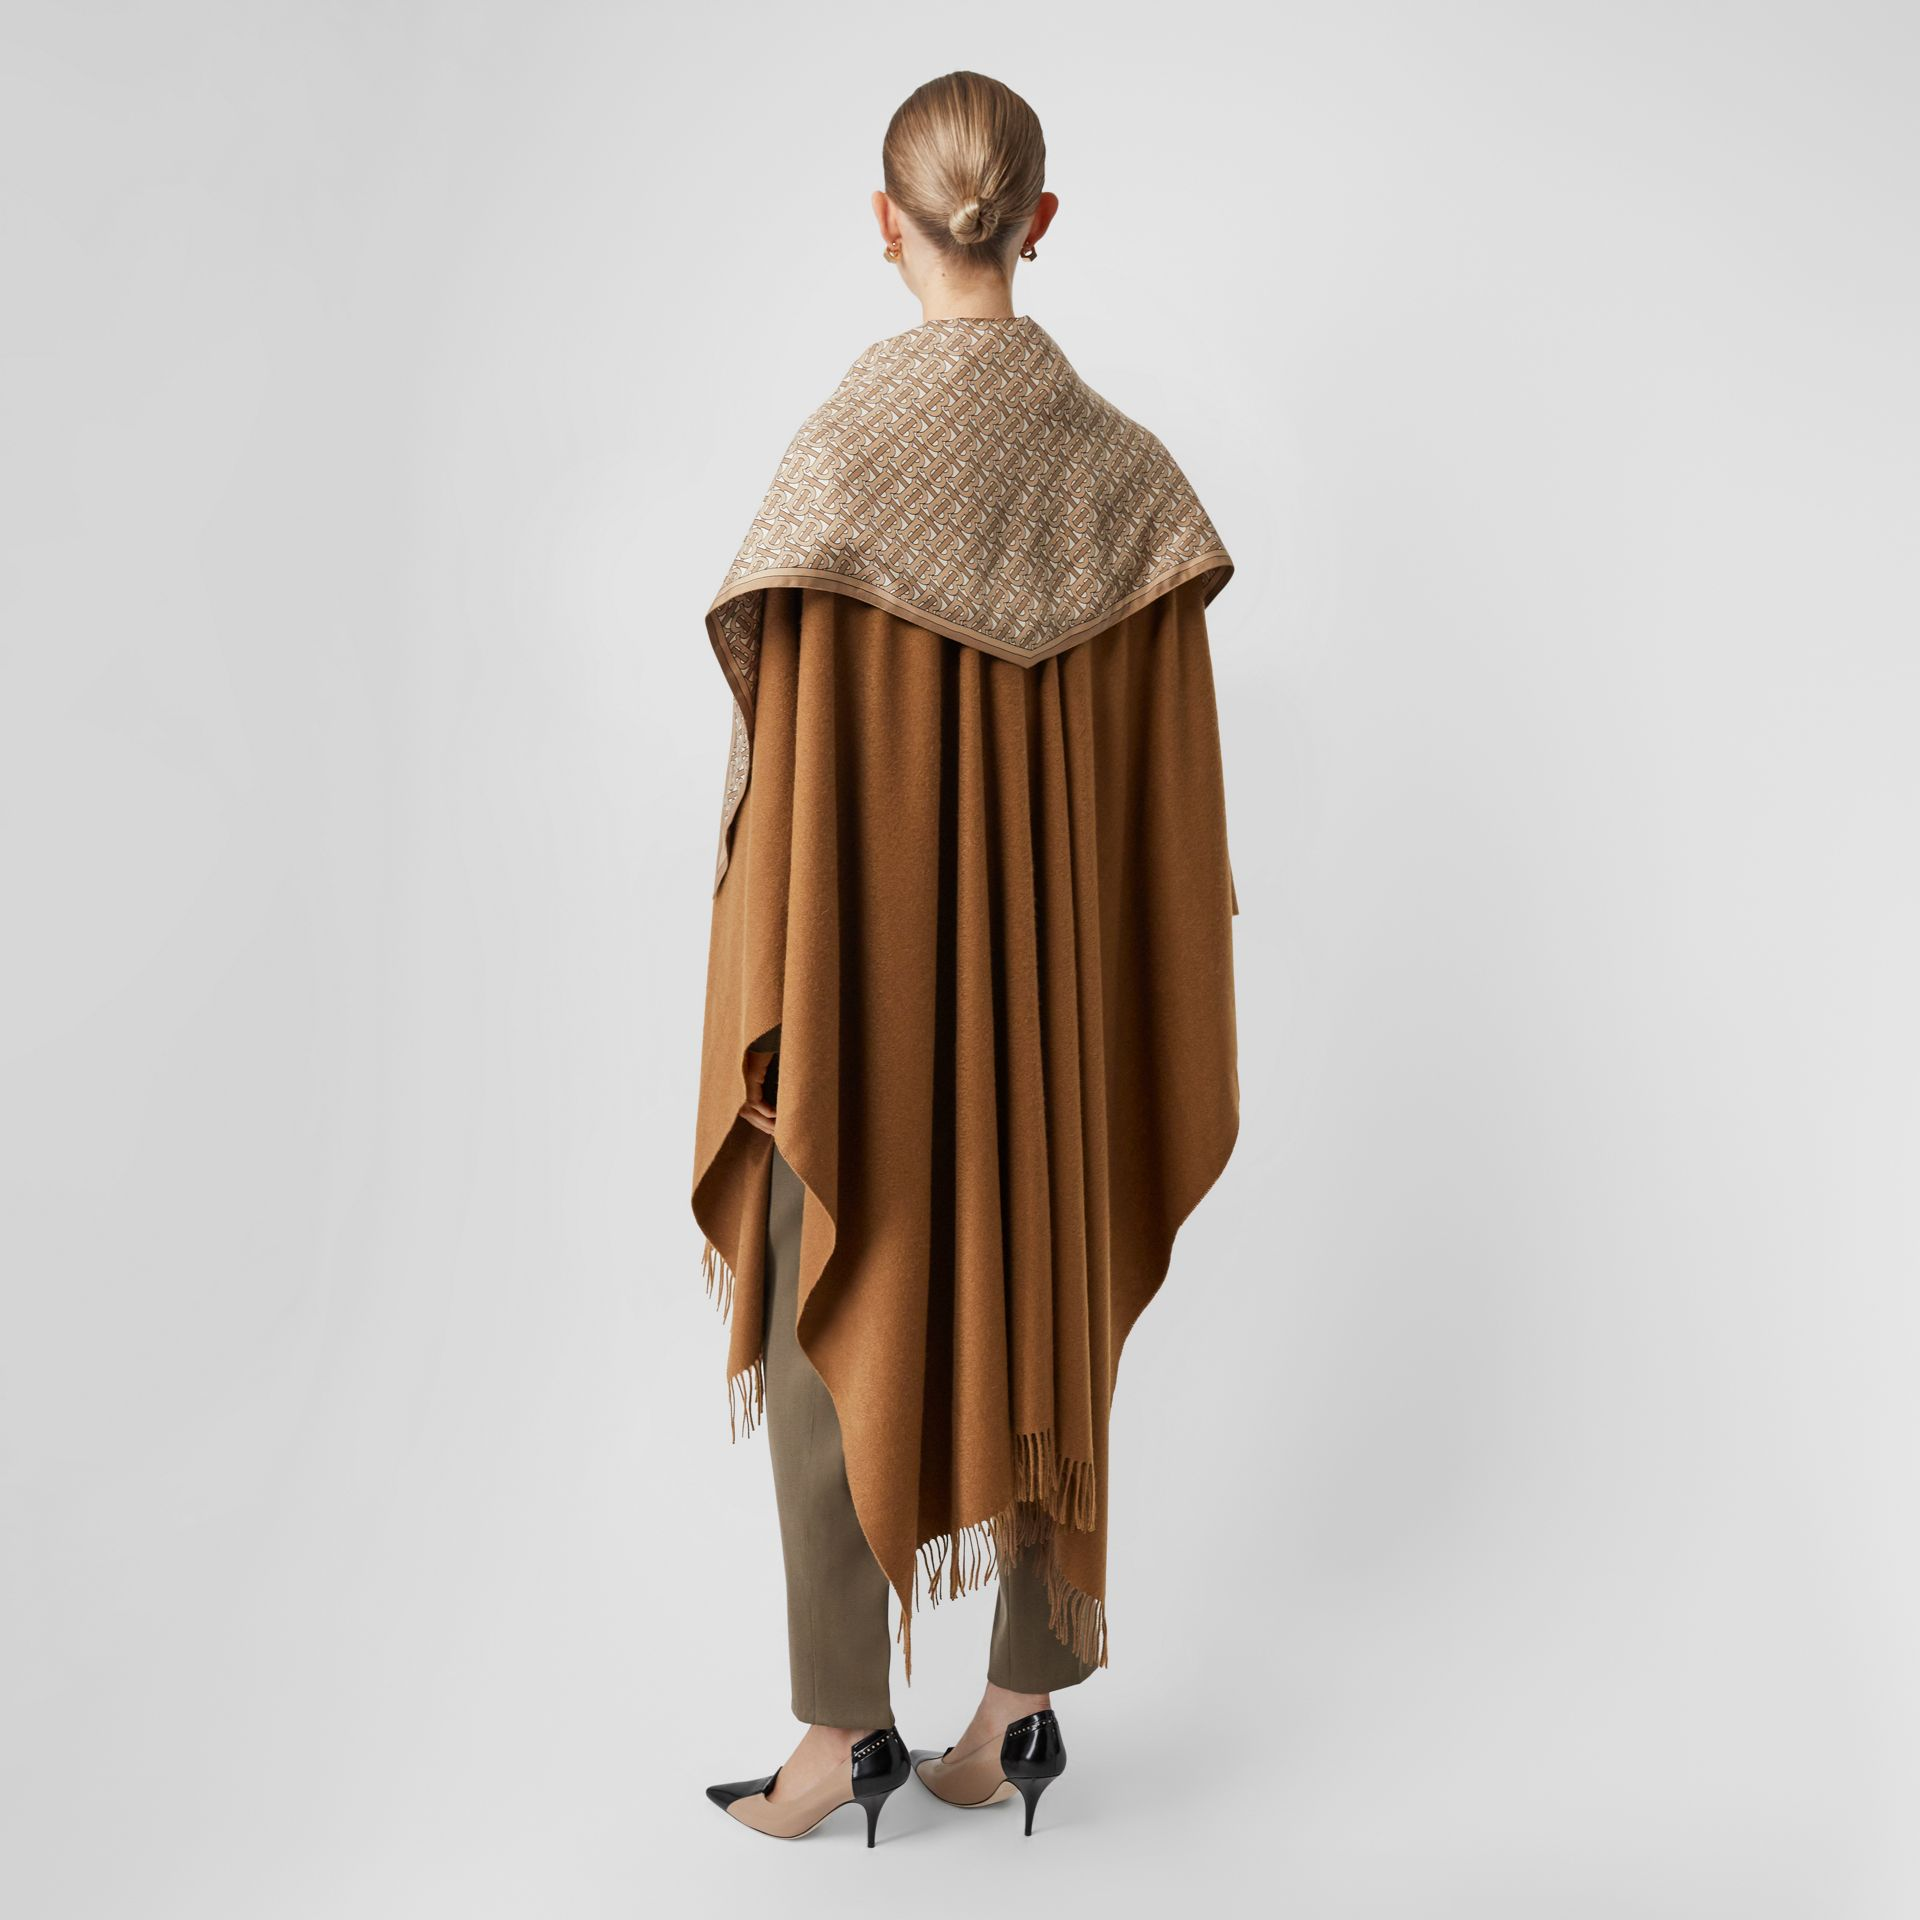 Detachable Monogram Print Scarf Cashmere Cape in Fern - Women | Burberry Australia - gallery image 2